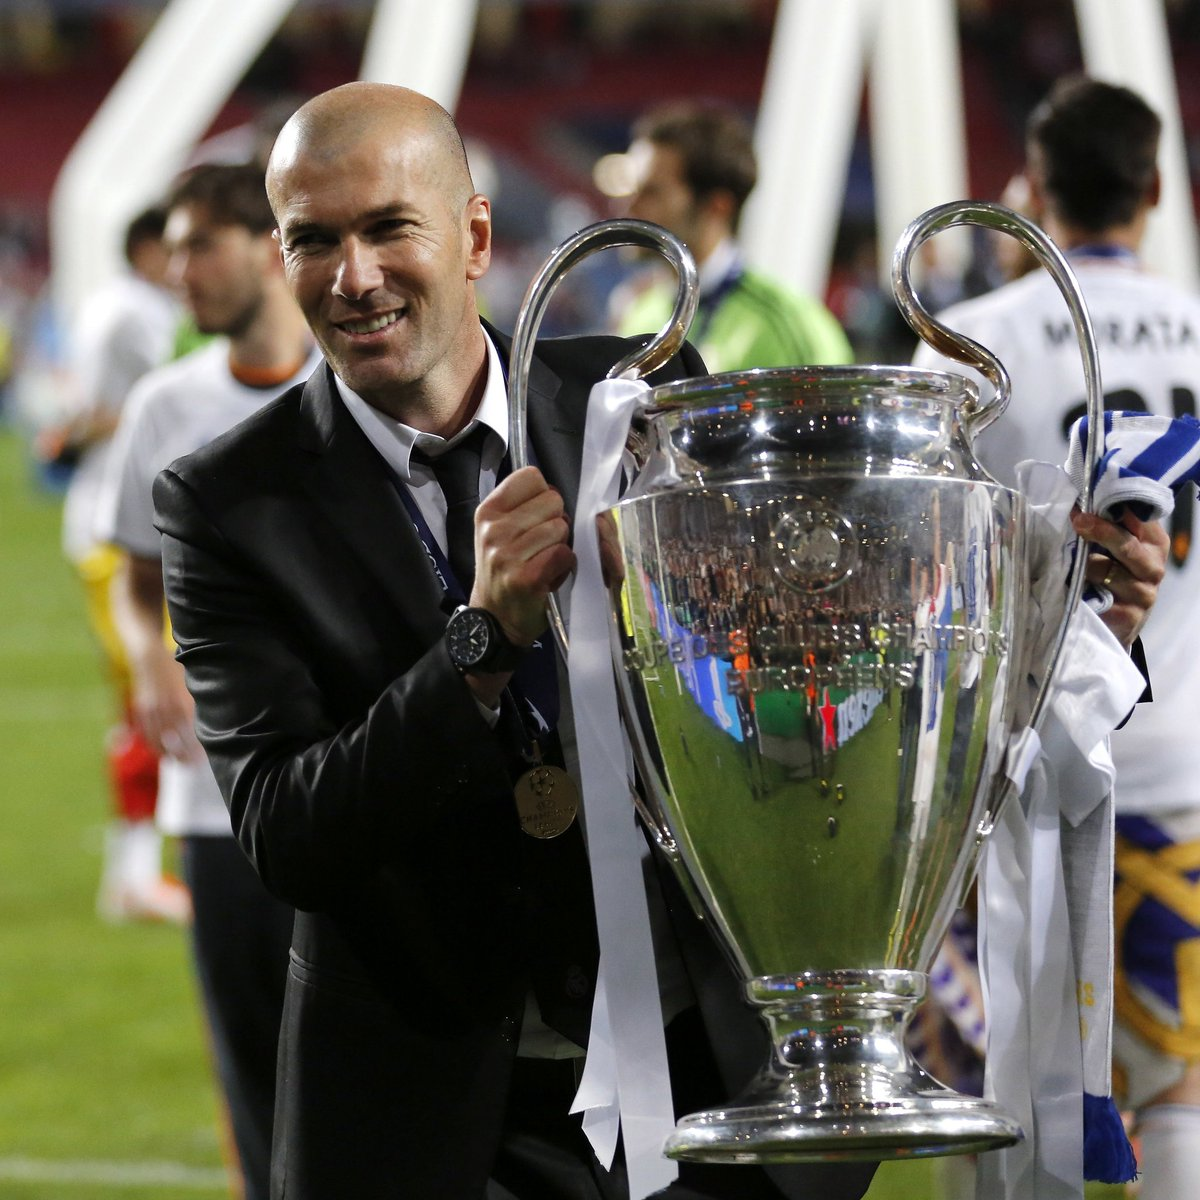 Real Madrid manager, Zinedine #Zidane made history on this day, four years ago.    1st French manager to win the #UCL  2nd man to win the trophy with Real Madrid as both a player and a manager  7th man to win the European Cup as a player & manager  #ThursdayMotivationpic.twitter.com/8nJBZoThSk